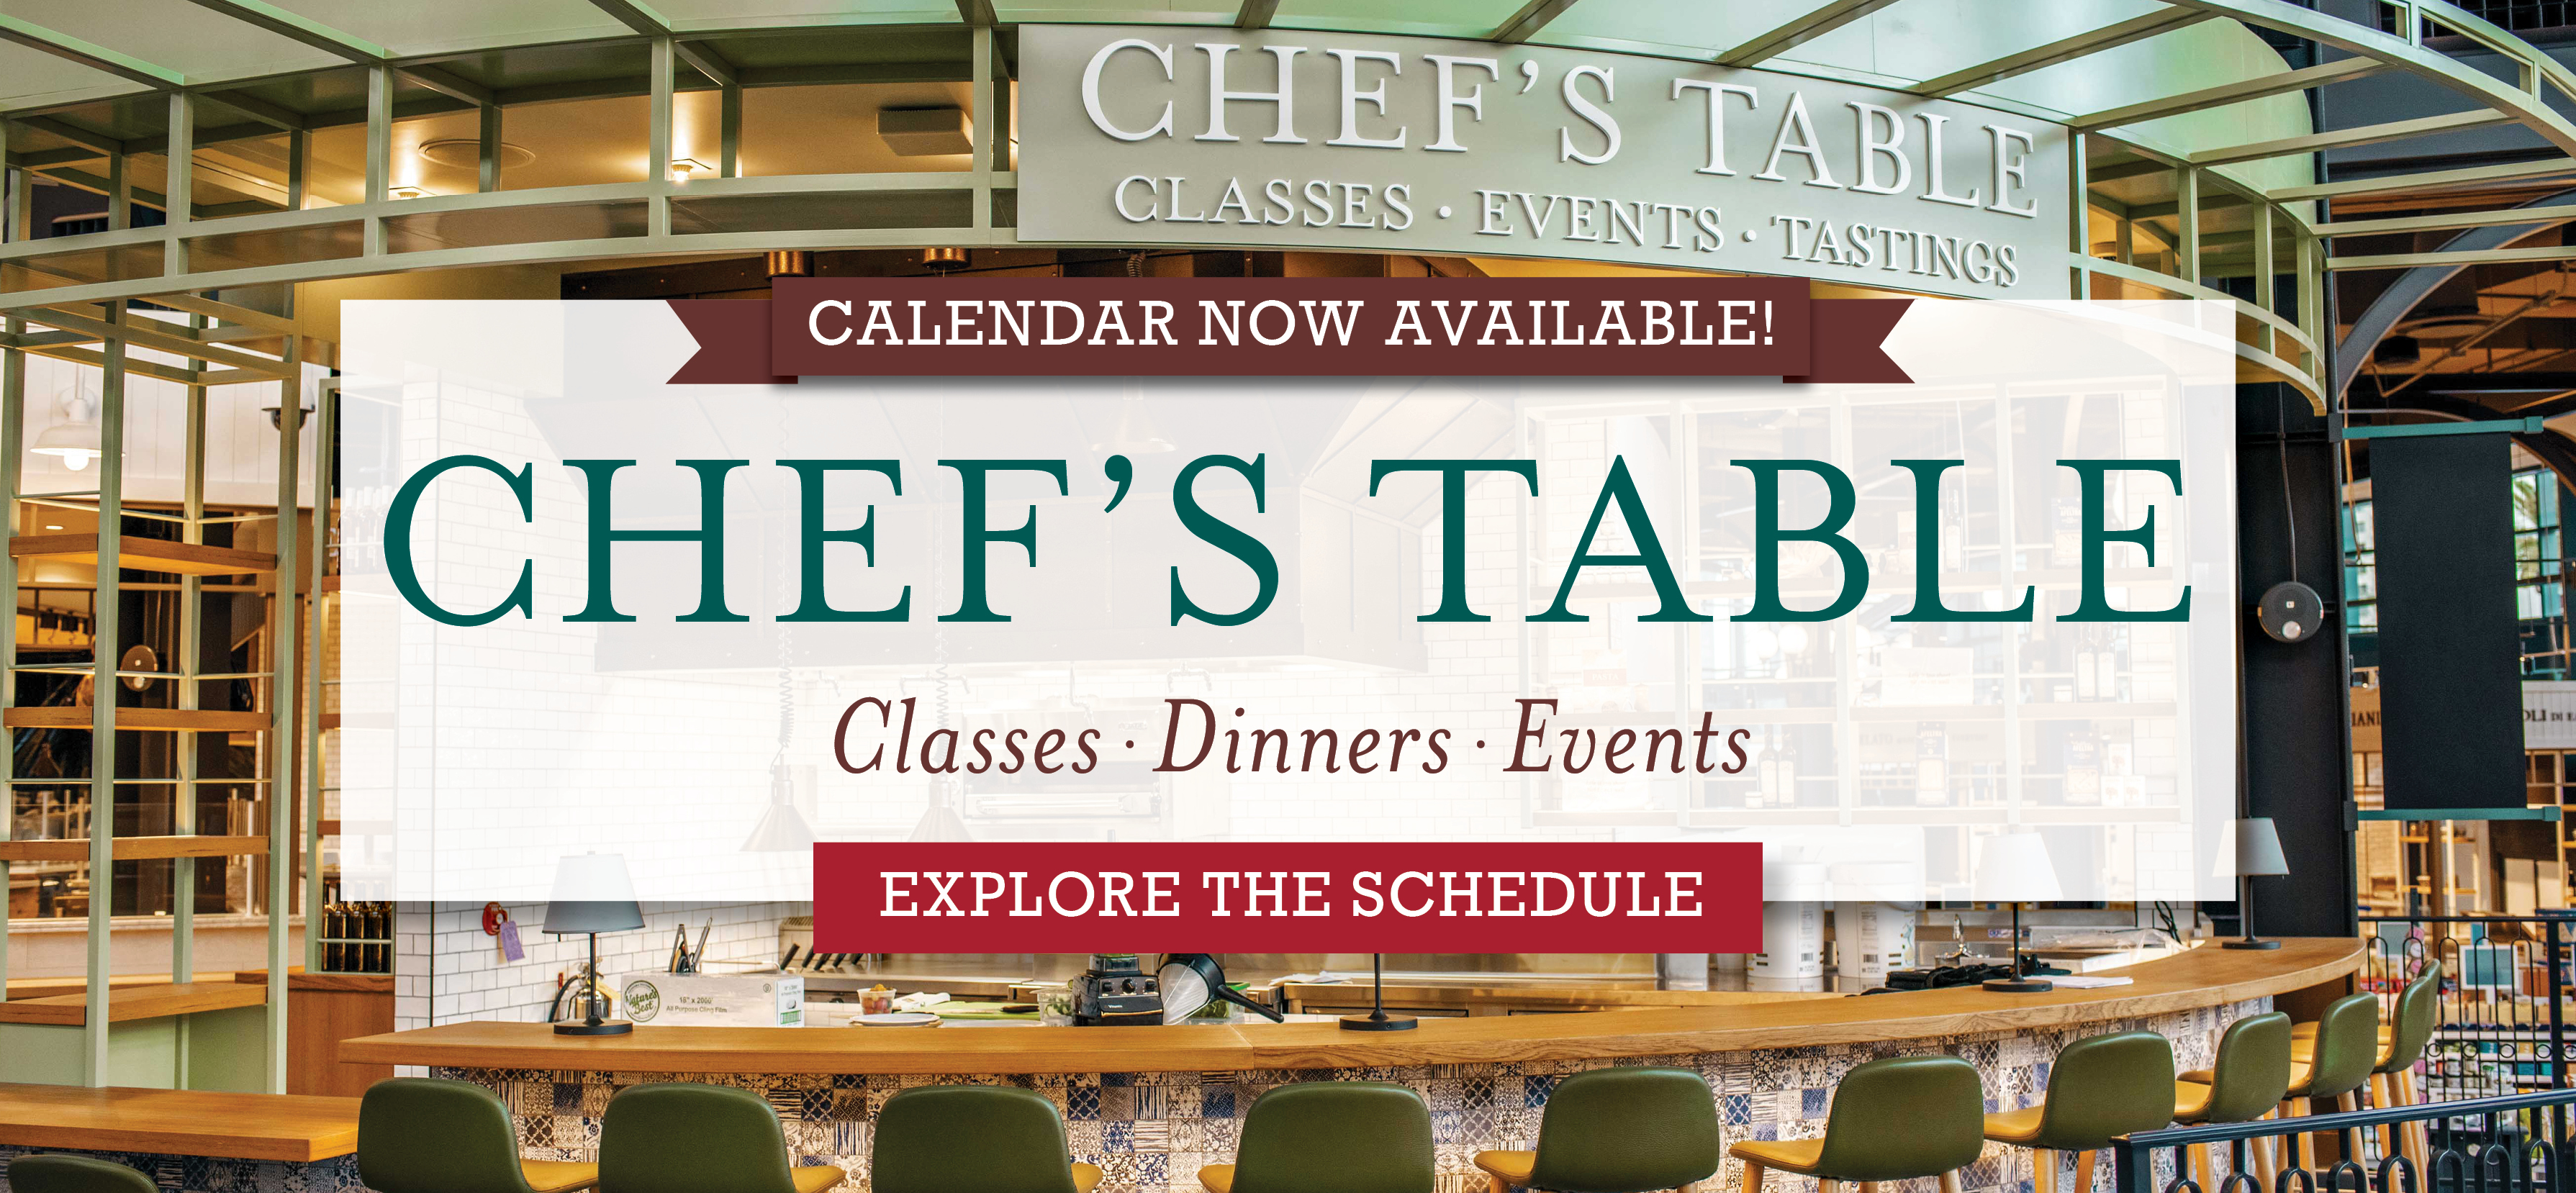 Learn More About Our Chef's Table